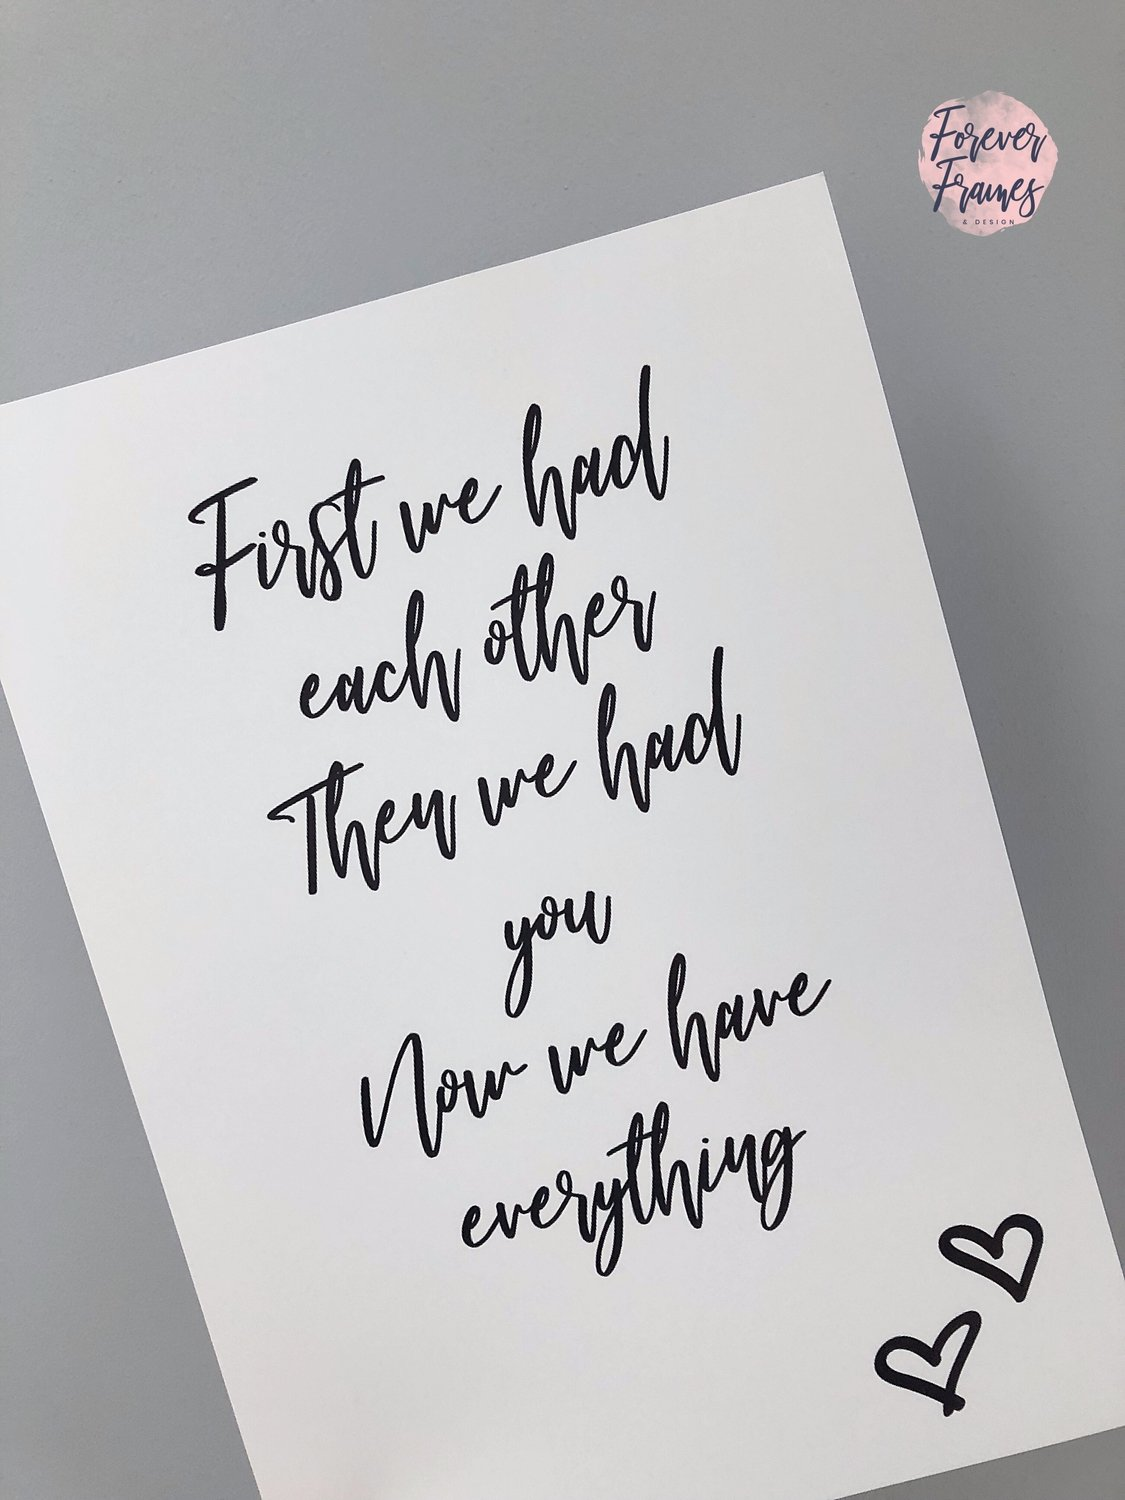 First we had each other.... A4 Print